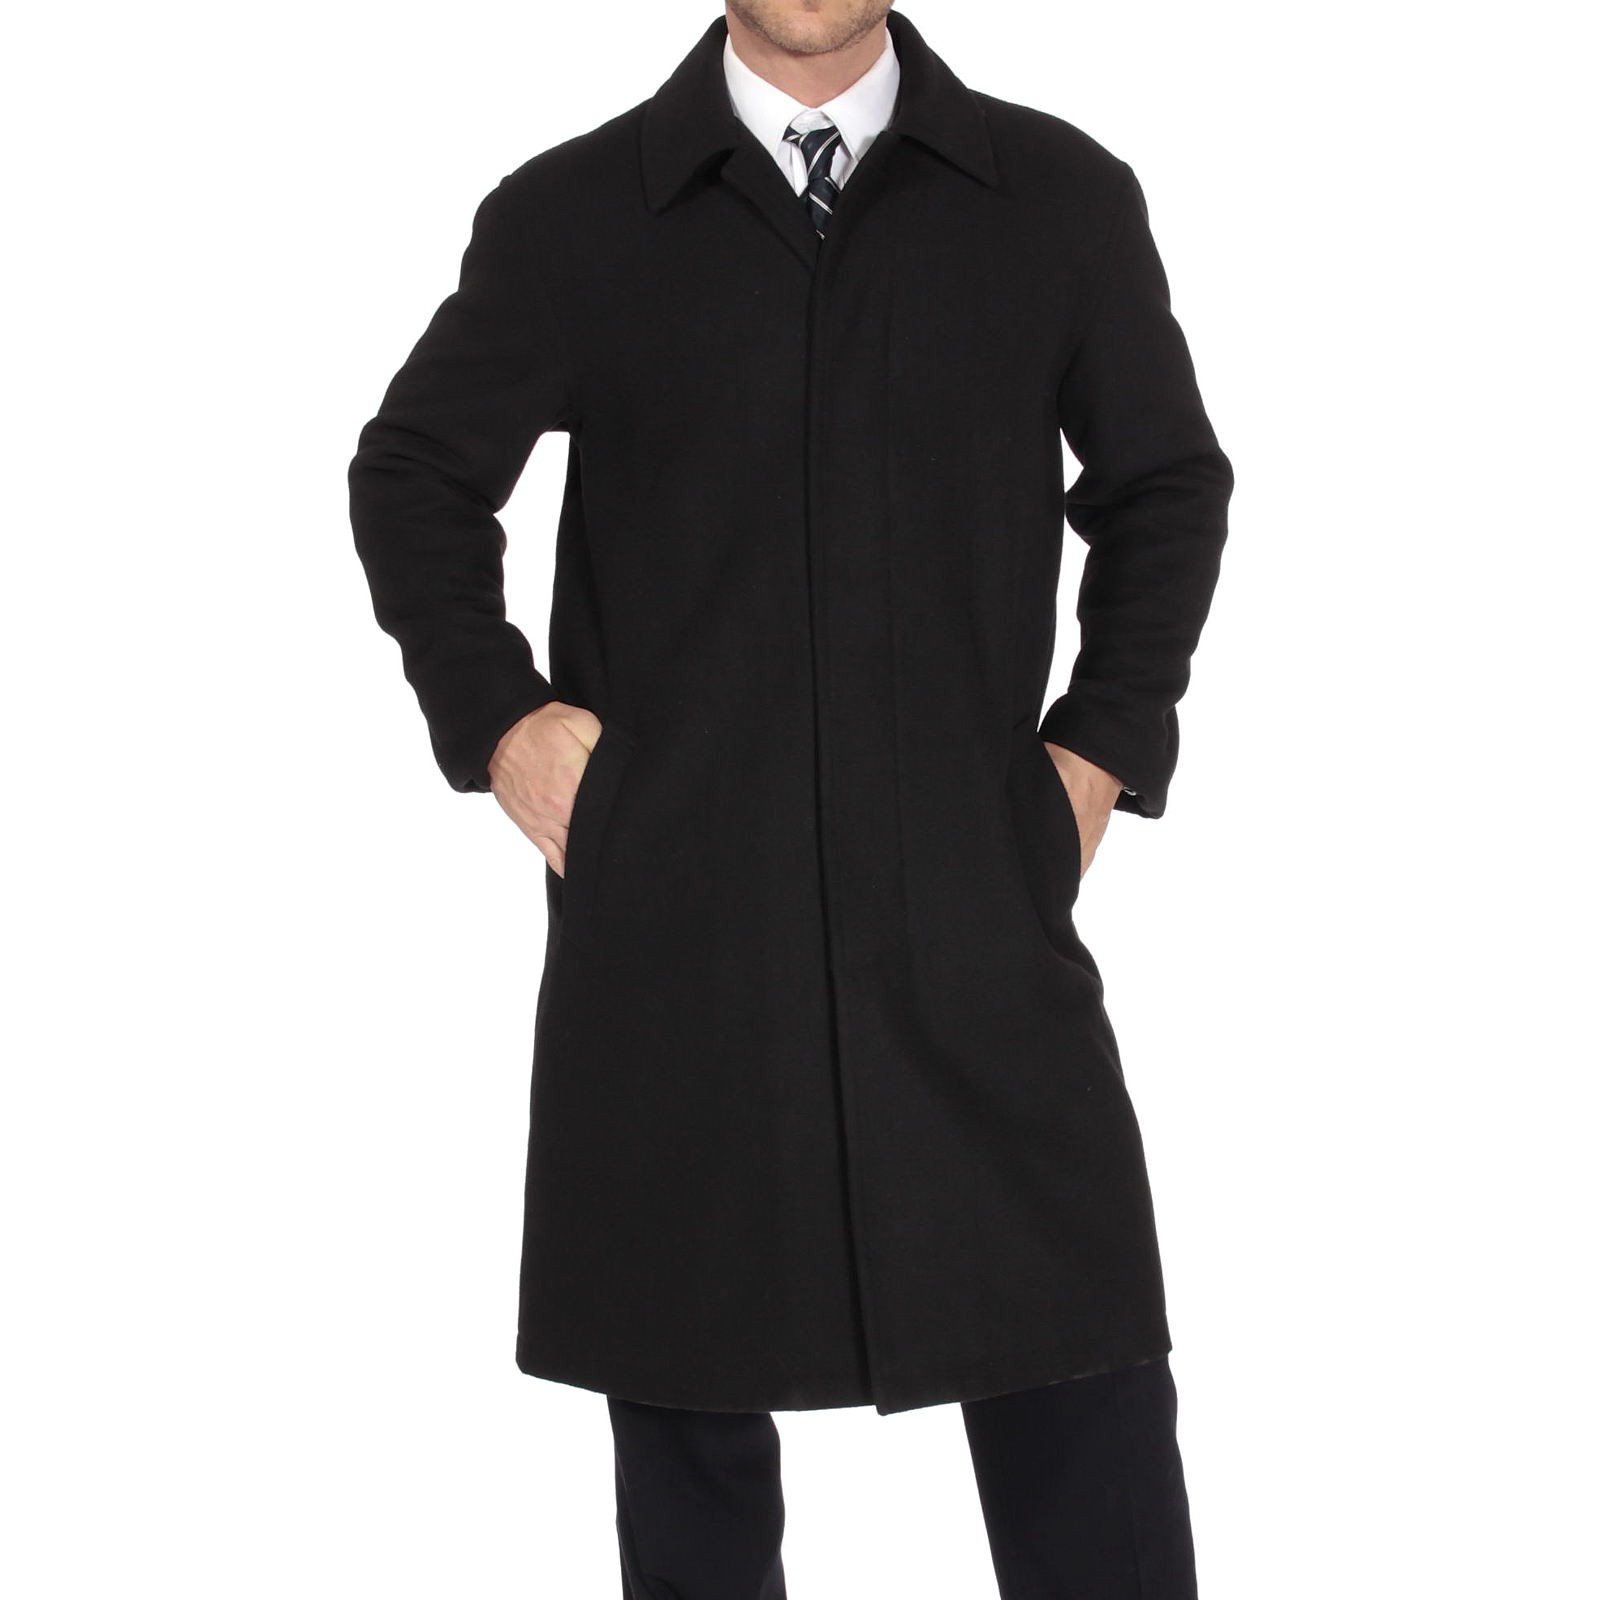 alpine swiss Zach Mens Wool Trench Coat Knee Length Overcoat Black Lrg by alpine swiss